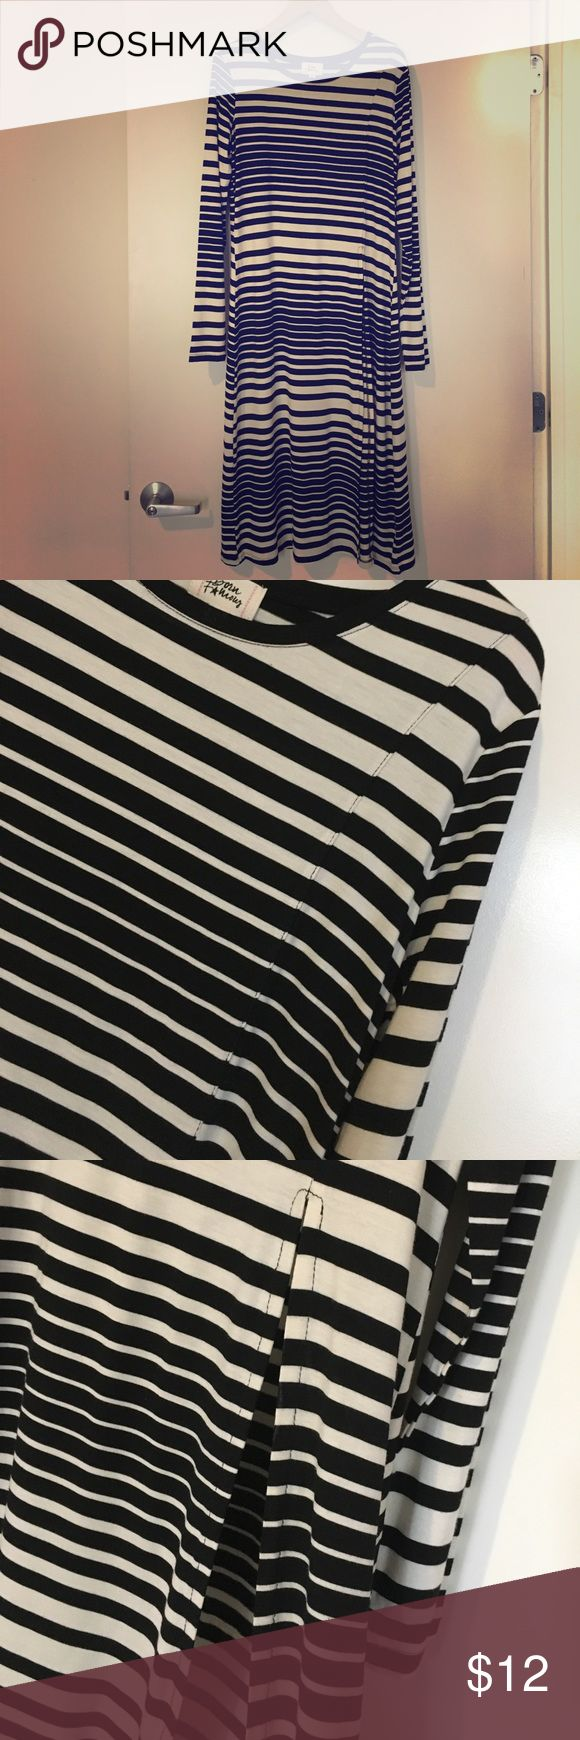 Striped Slit Long Sleeve Tunic/Duster White and black stripes featured on this fun tunic! High slit, seam detailing, long sleeves. 95% rayon 5% spandex. Looks great with leather leggings and boots! Never been worn. Tops Tunics